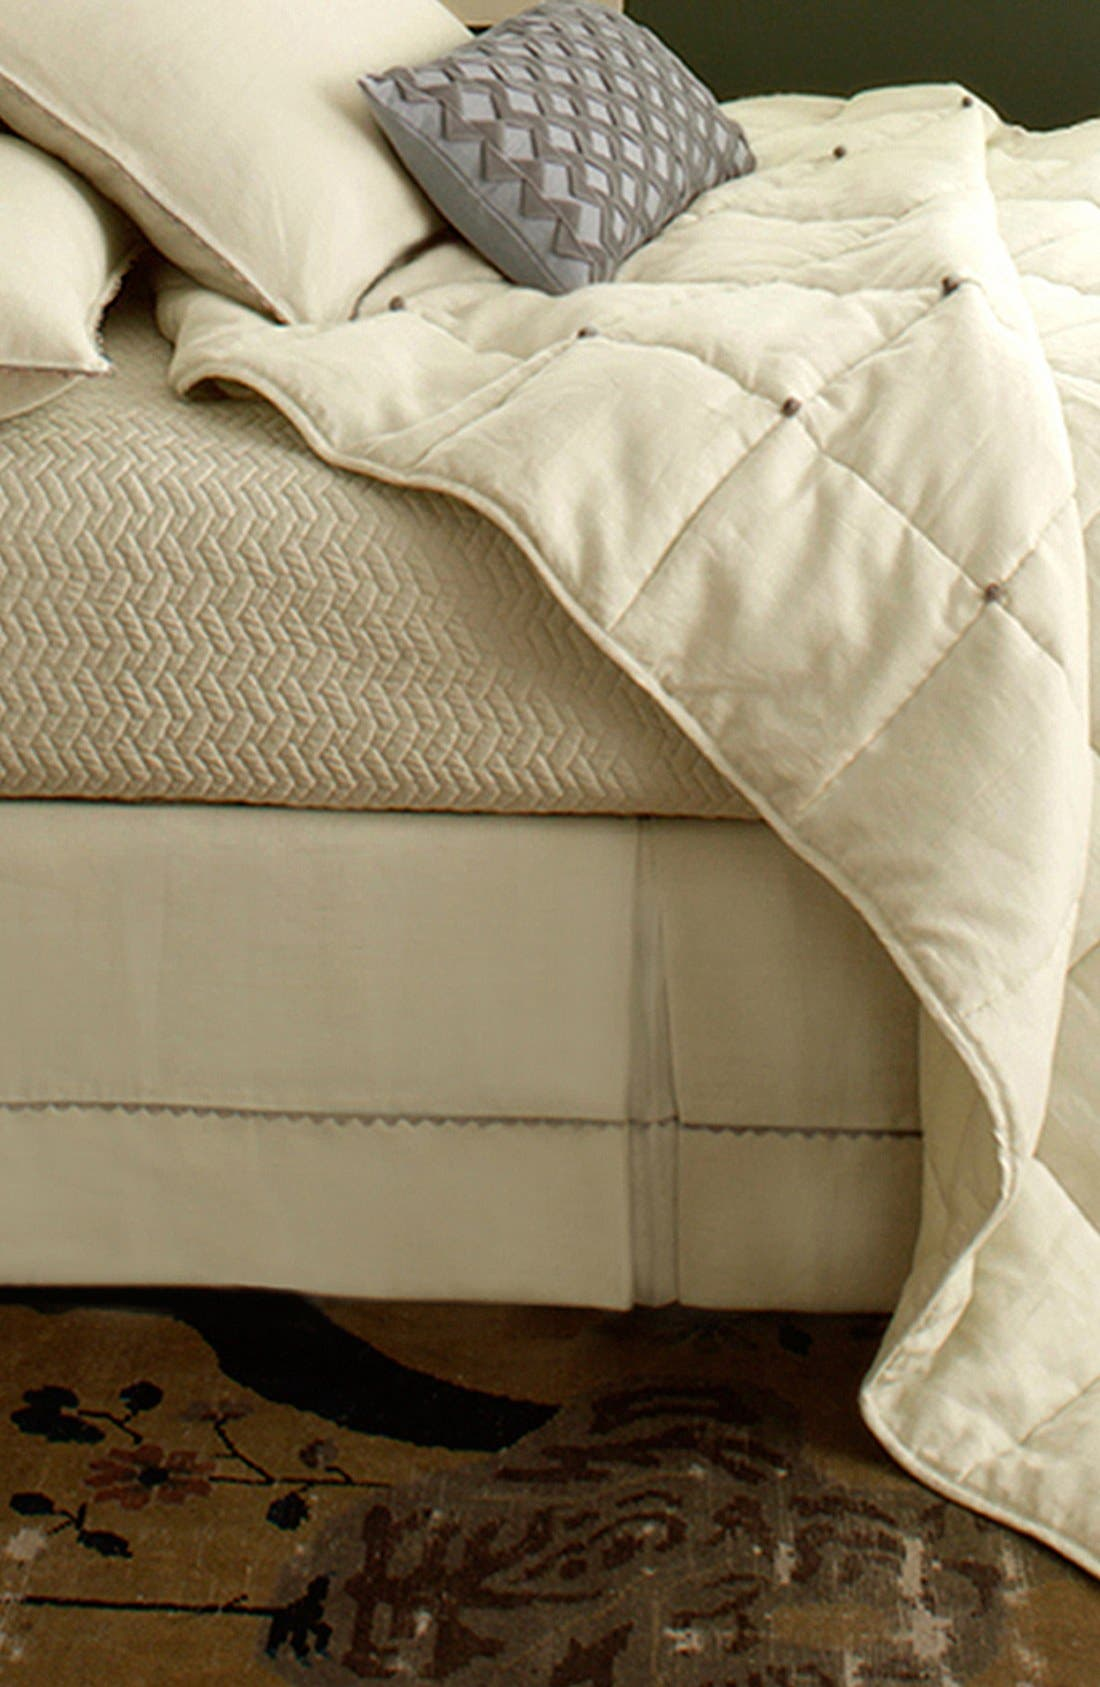 Main Image - Dransfield and Ross House 'Elizabeth Street' Bed Skirt